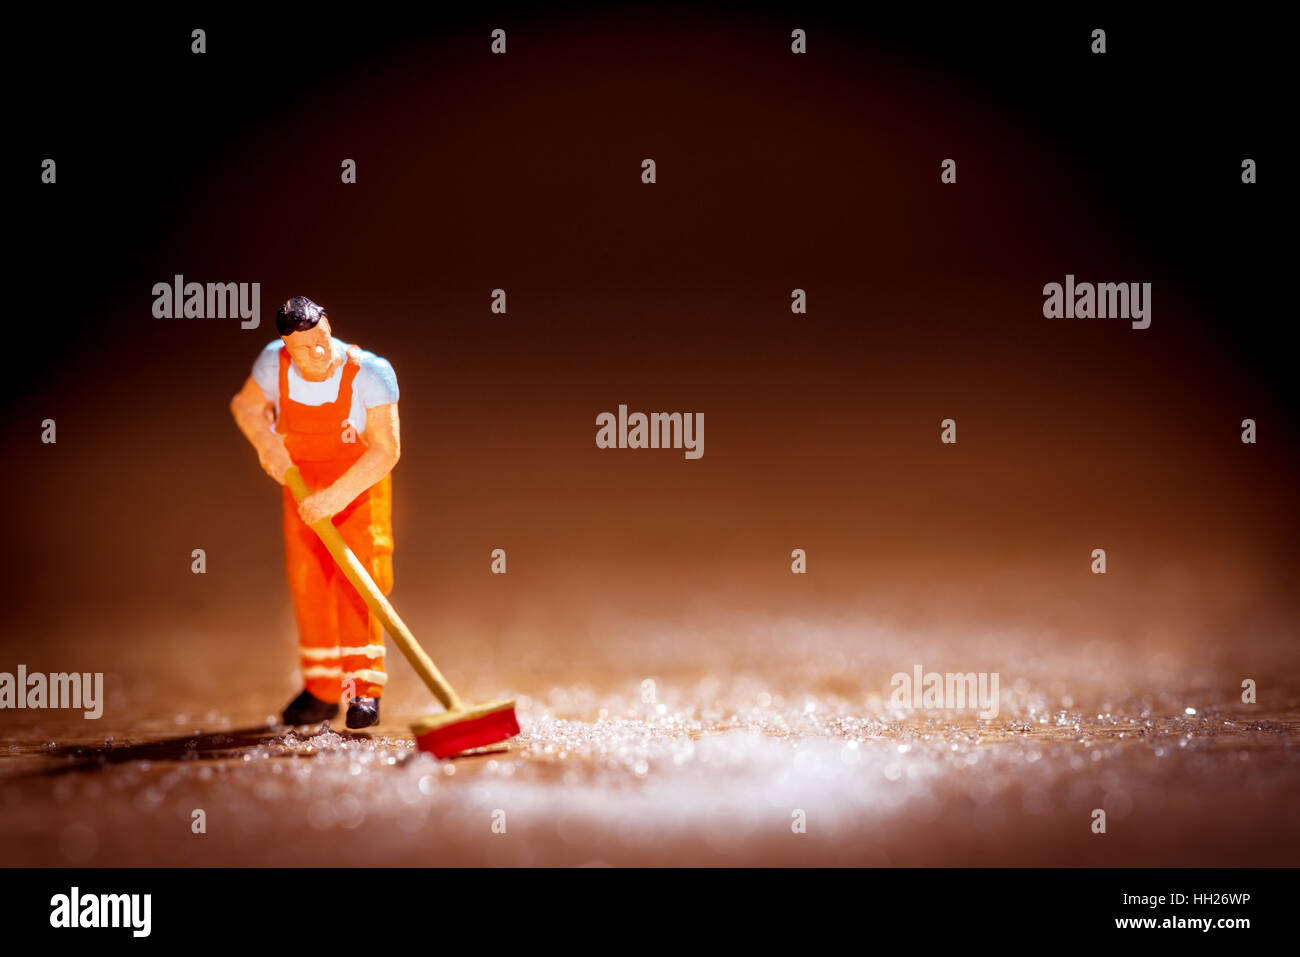 Conceptual image of a man sweeping up. - Stock Image